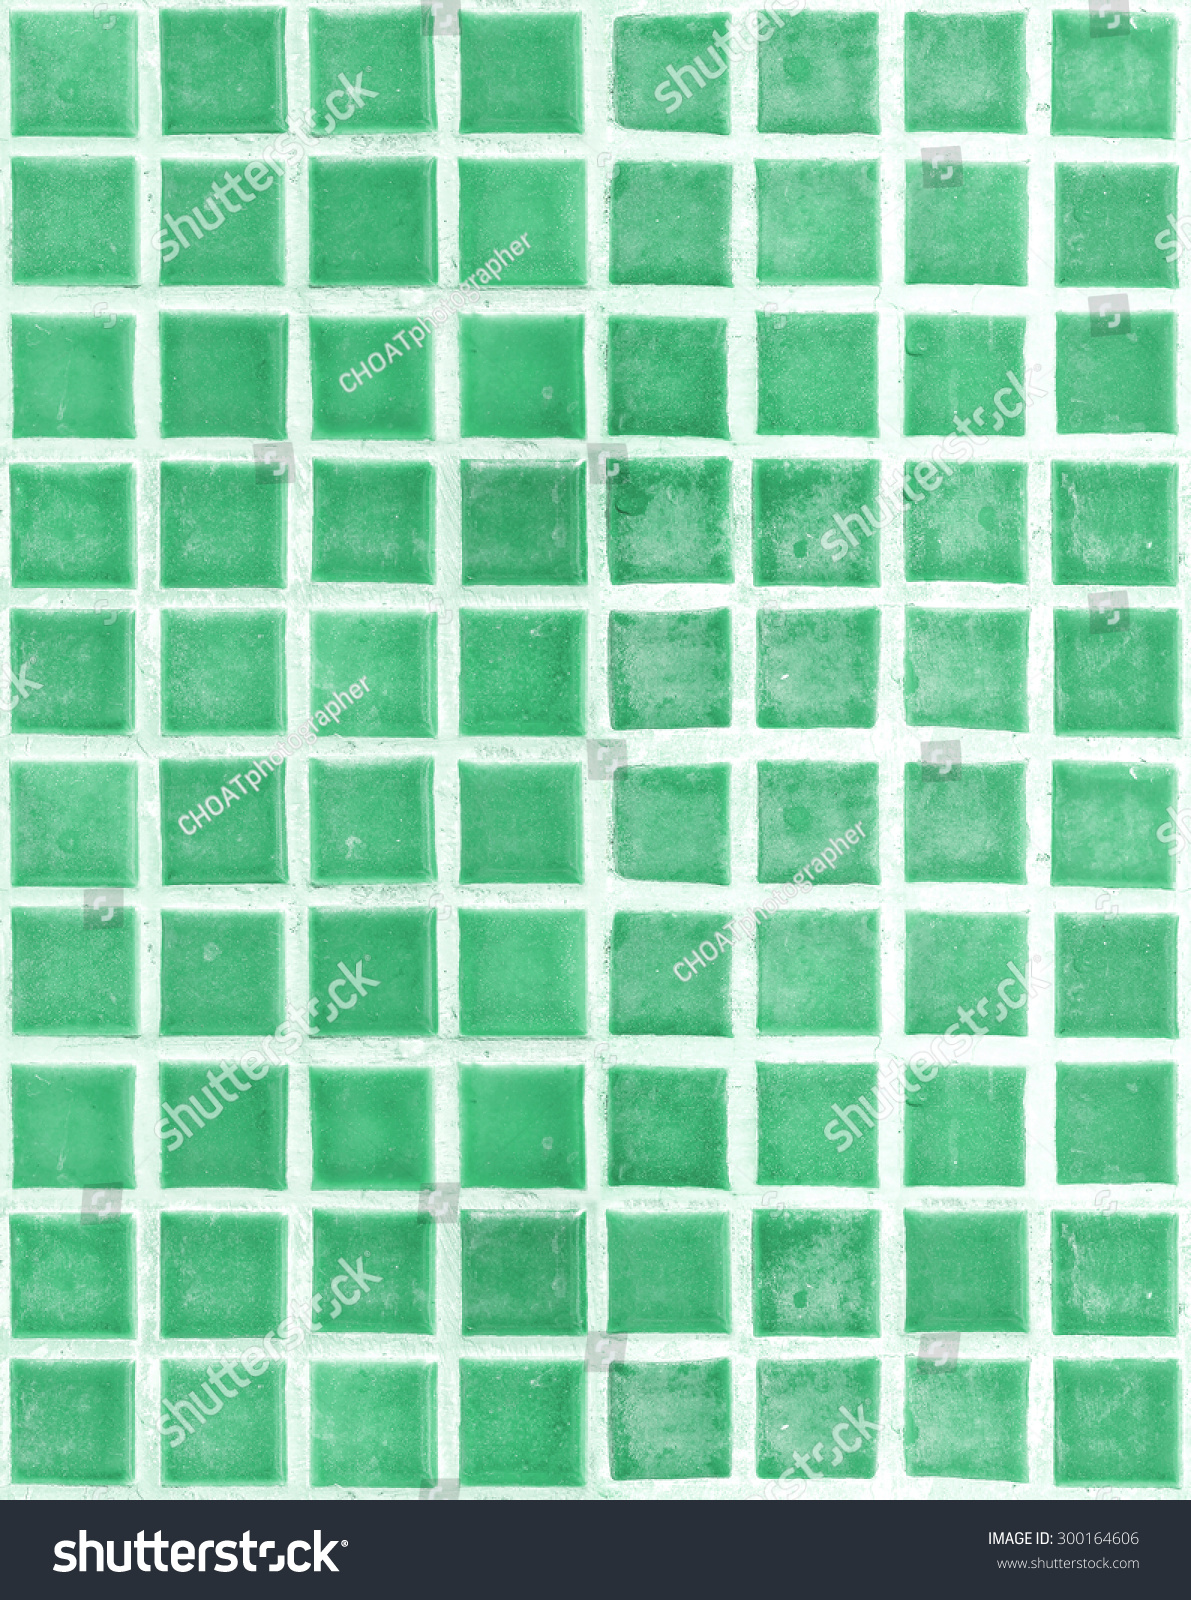 Green old square tile texture wall stock photo 300164606 green old square tile texture of wall and floor tile interior of bathroom pool dailygadgetfo Choice Image